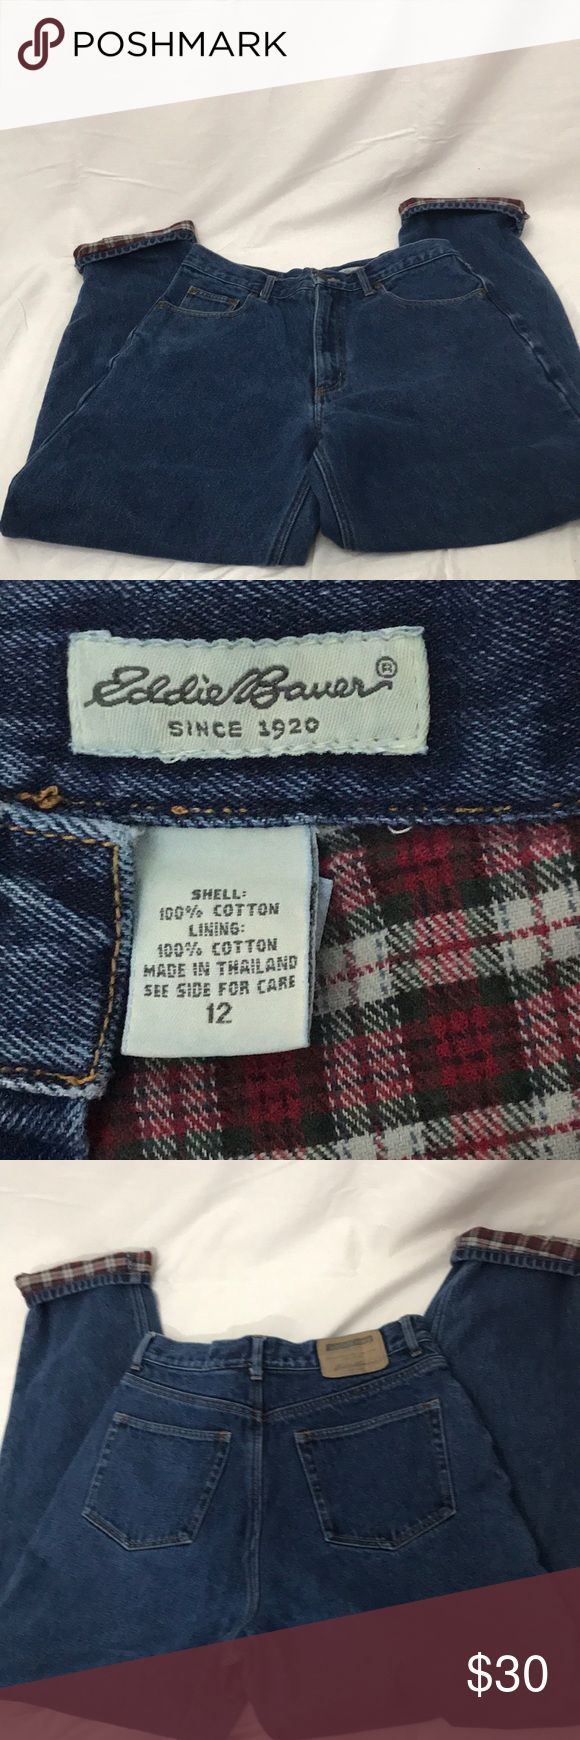 """Eddie Bauer Flannel Lined Jeans Flannel lined Eddie Bauer jeans. Waist is approximately 14.5"""", rise is approximately 12.5"""", inseam is approximately 30"""". Eddie Bauer Jeans"""